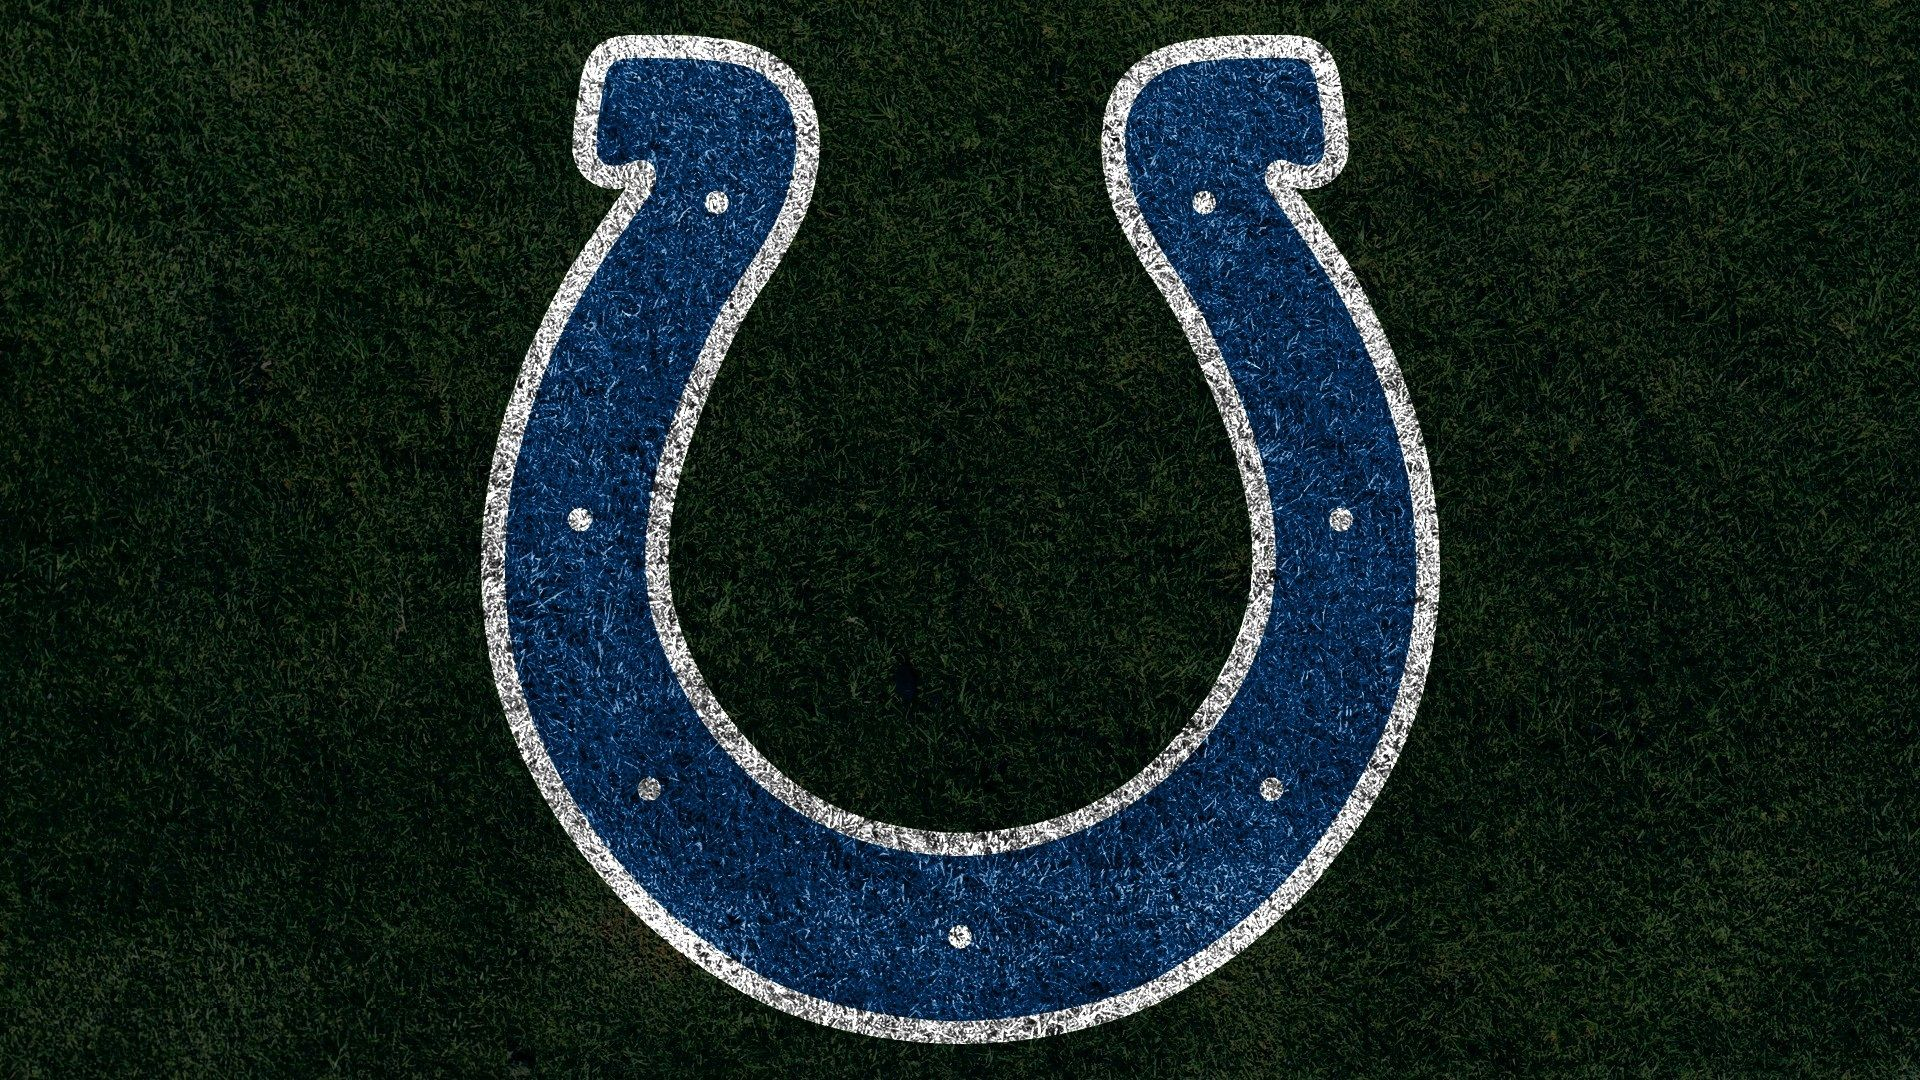 Wallpapers Hd Indianapolis Colts Indianapolis Colts